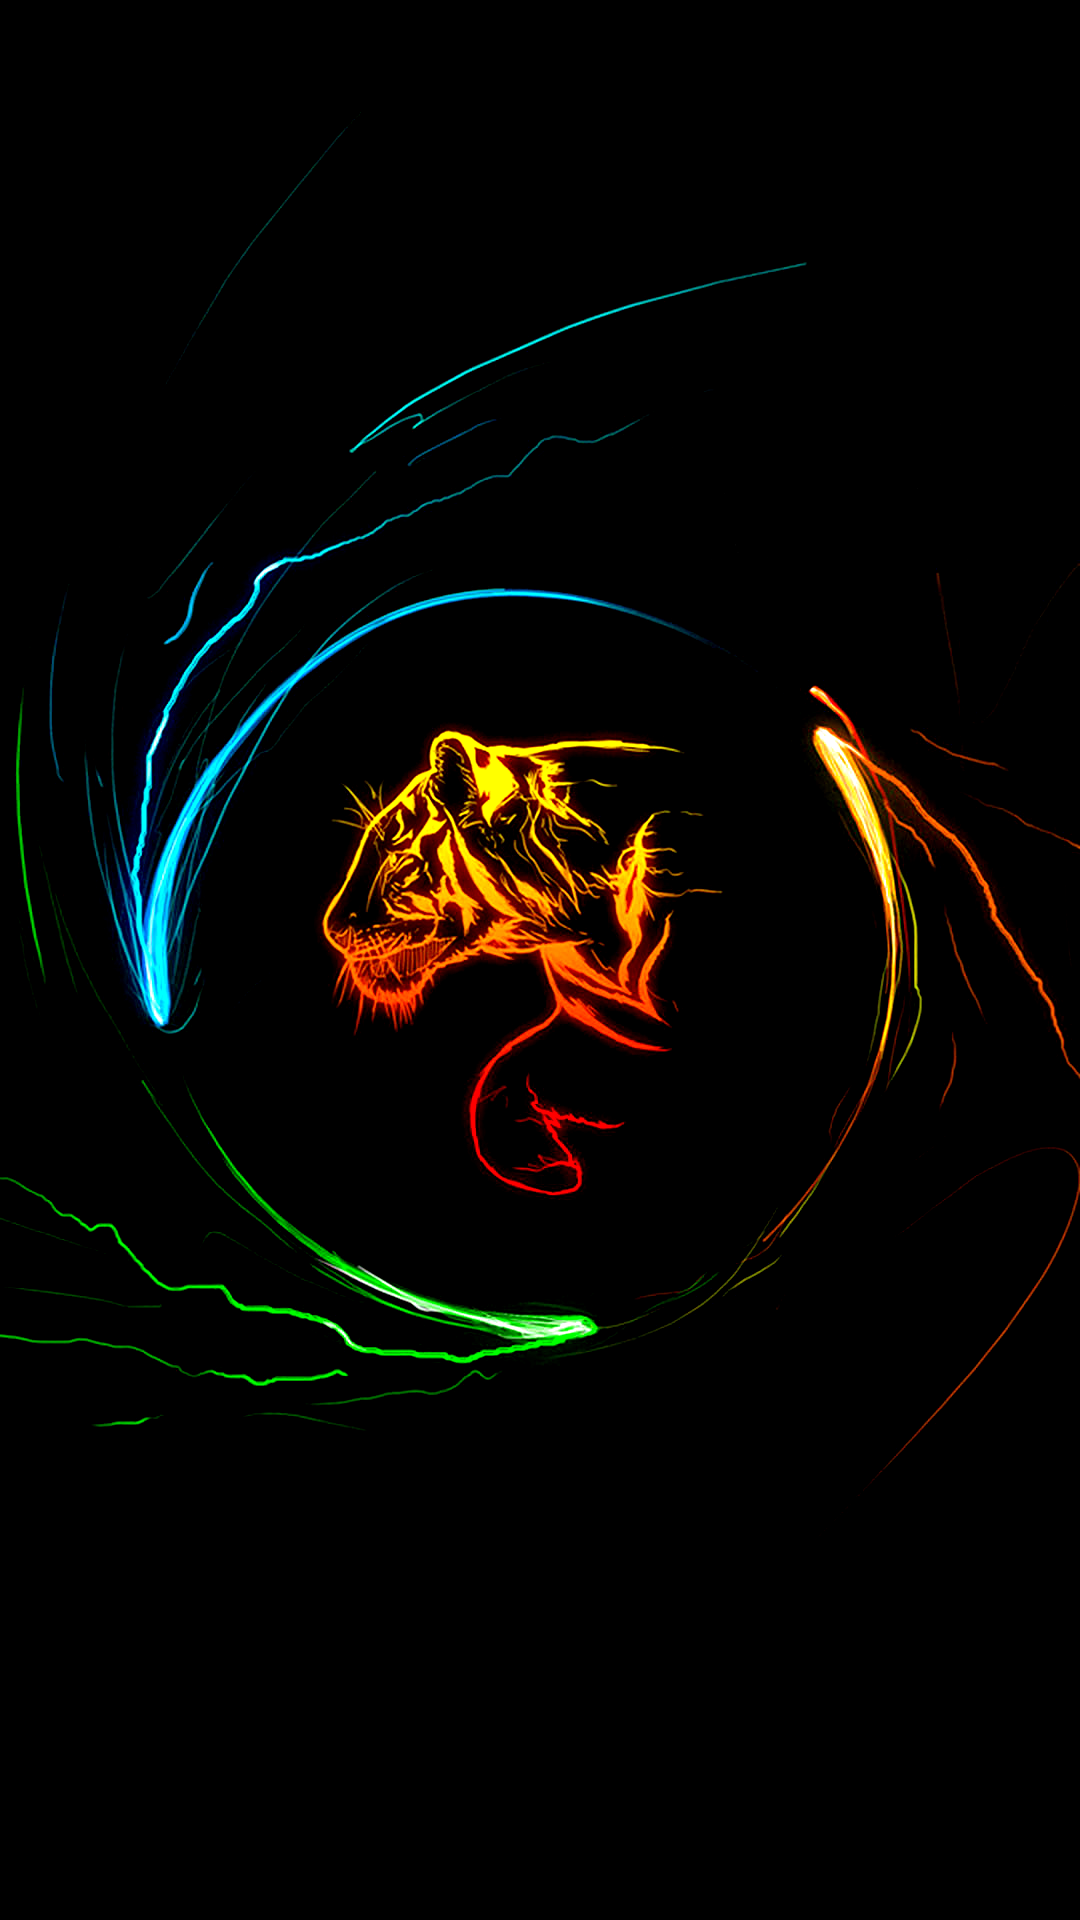 Colorful-Tiger-True-Black-1080x1920-Need-iPhone-S-Plus-Background-for-IPhoneS-wallpaper-wpc9003688